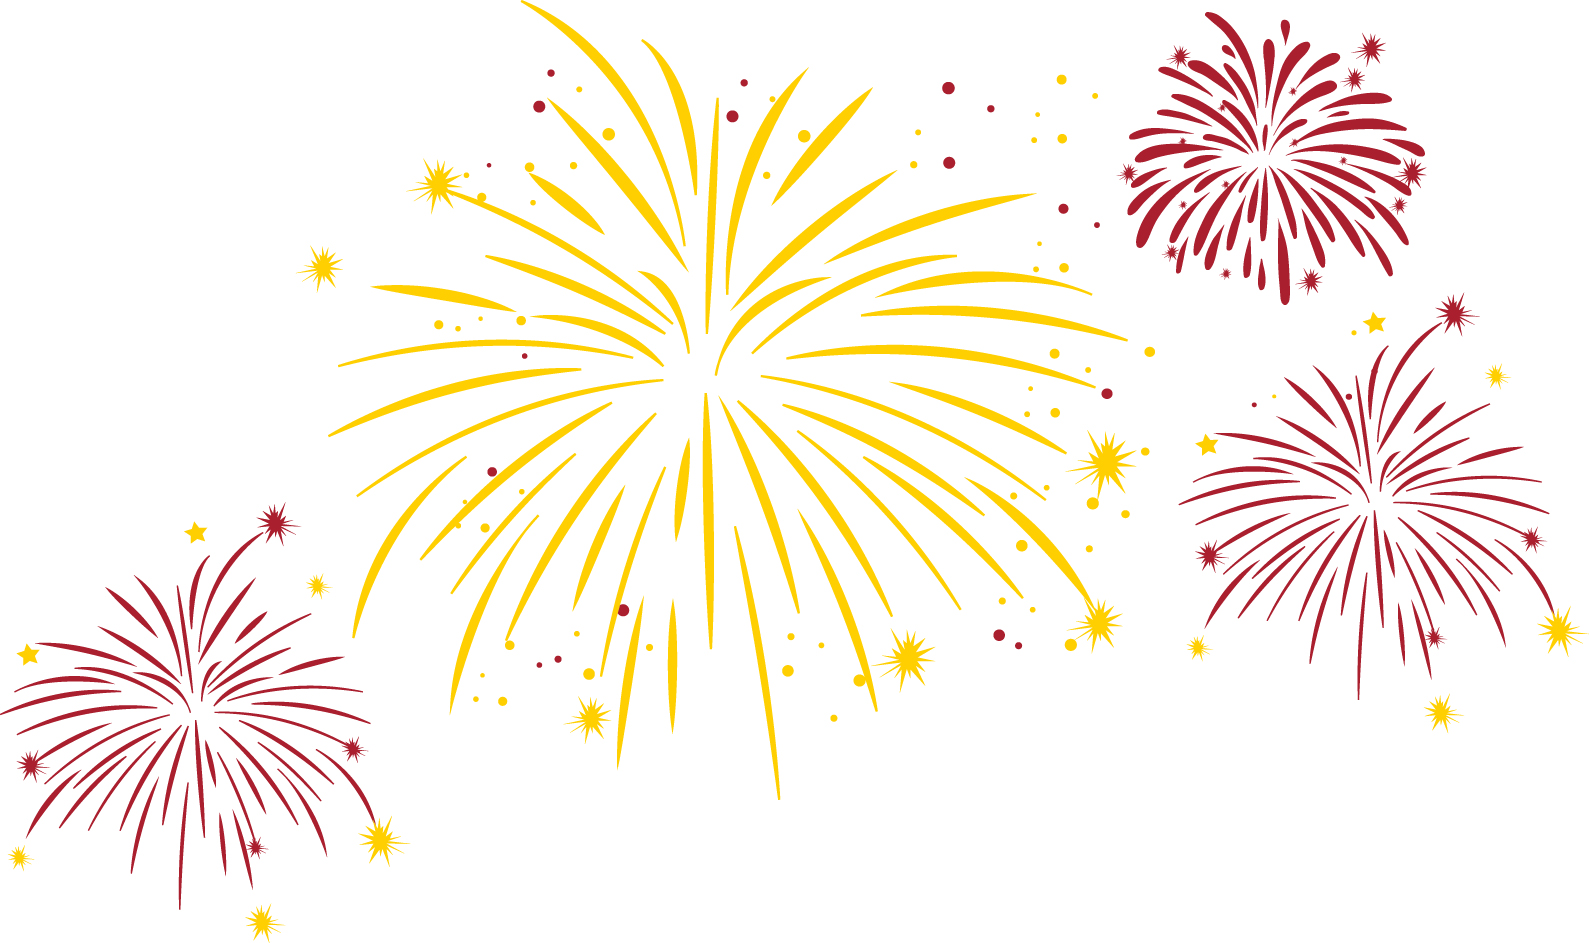 graphics of fireworks